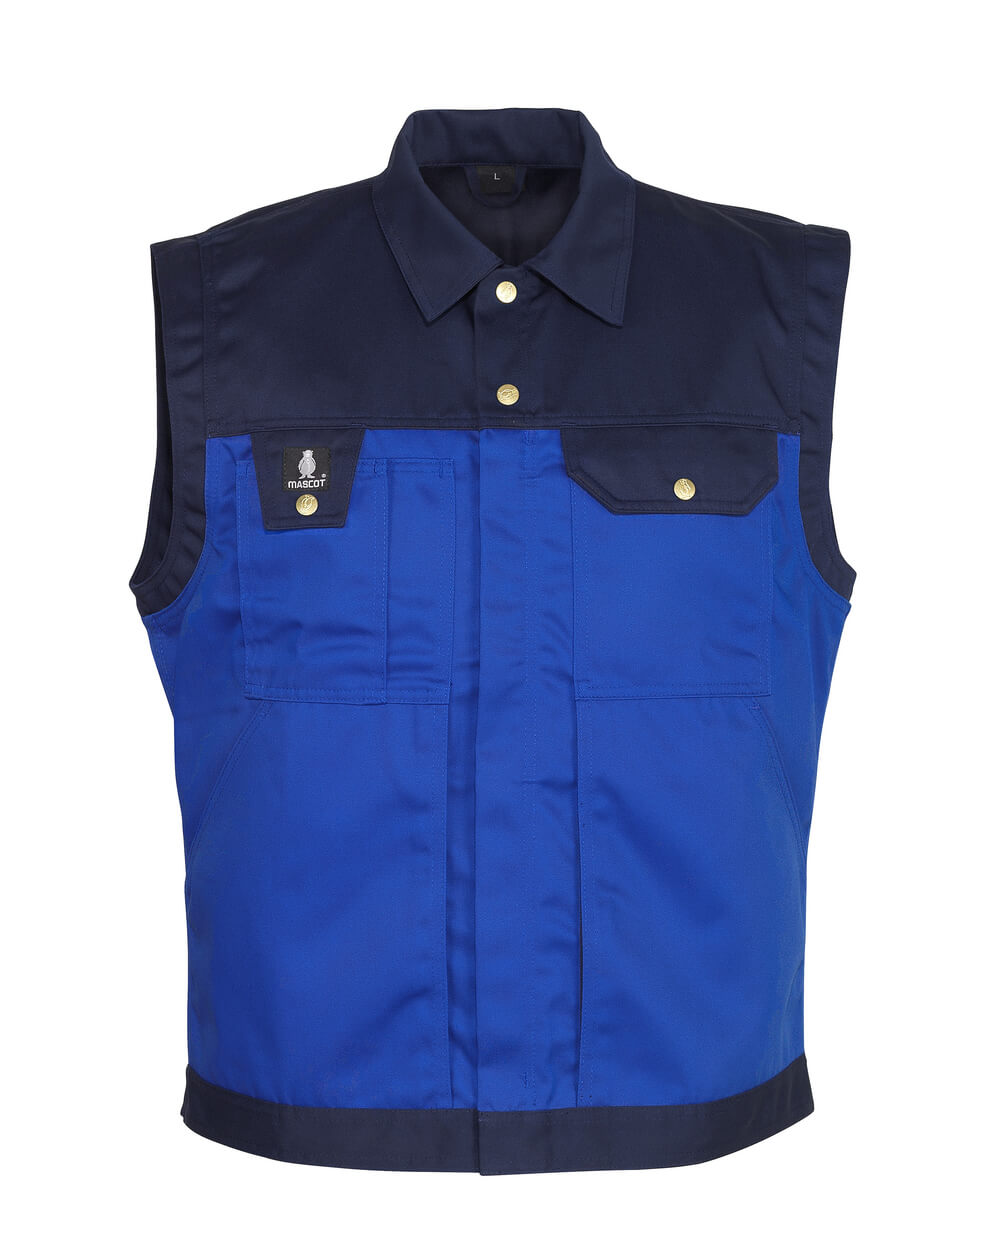 00990-430-1101 Gilet - royal/navy